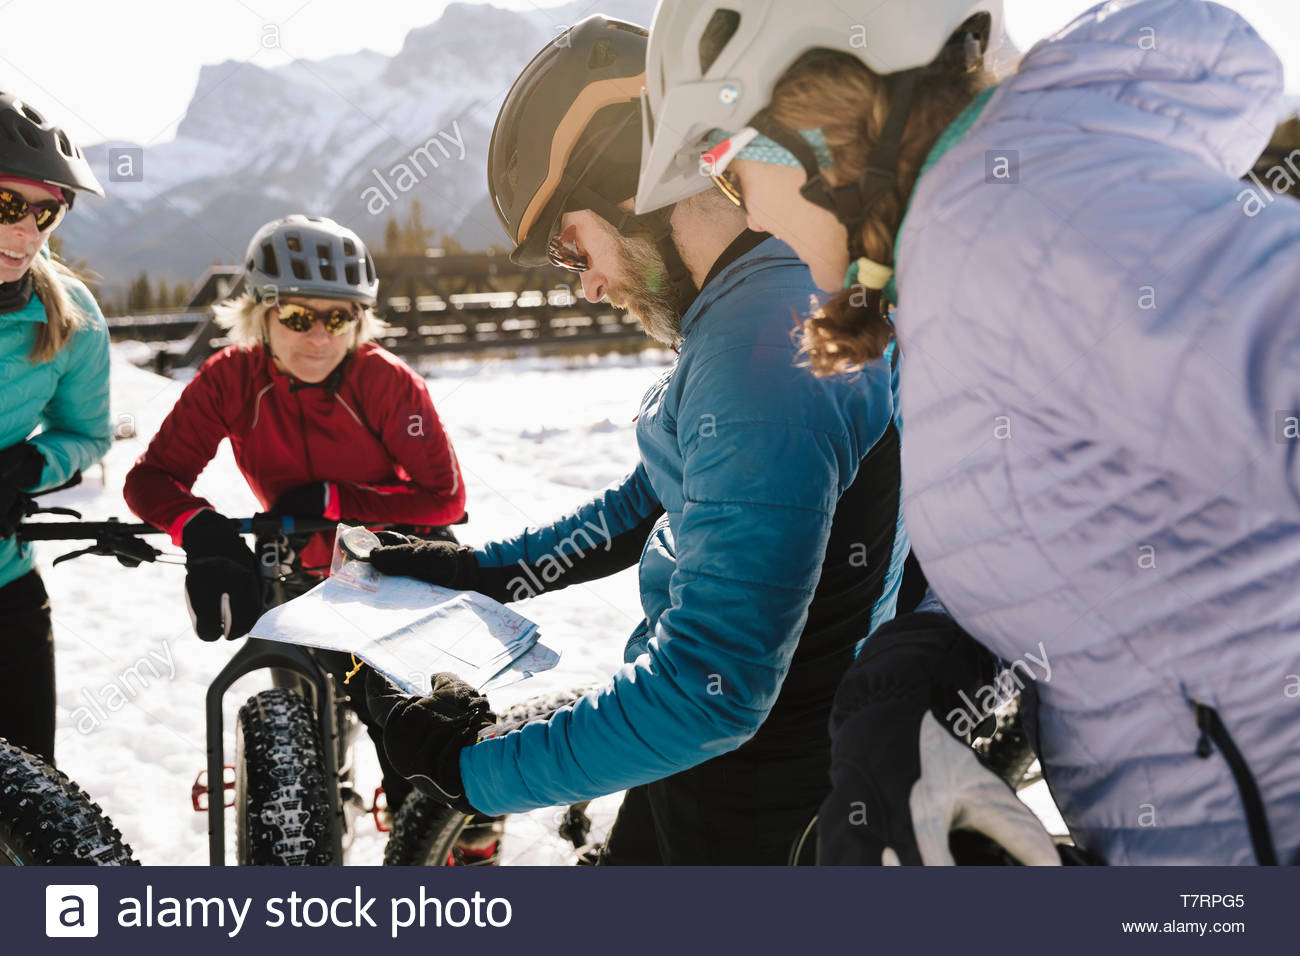 Friends with map fat biking in snow - Stock Image